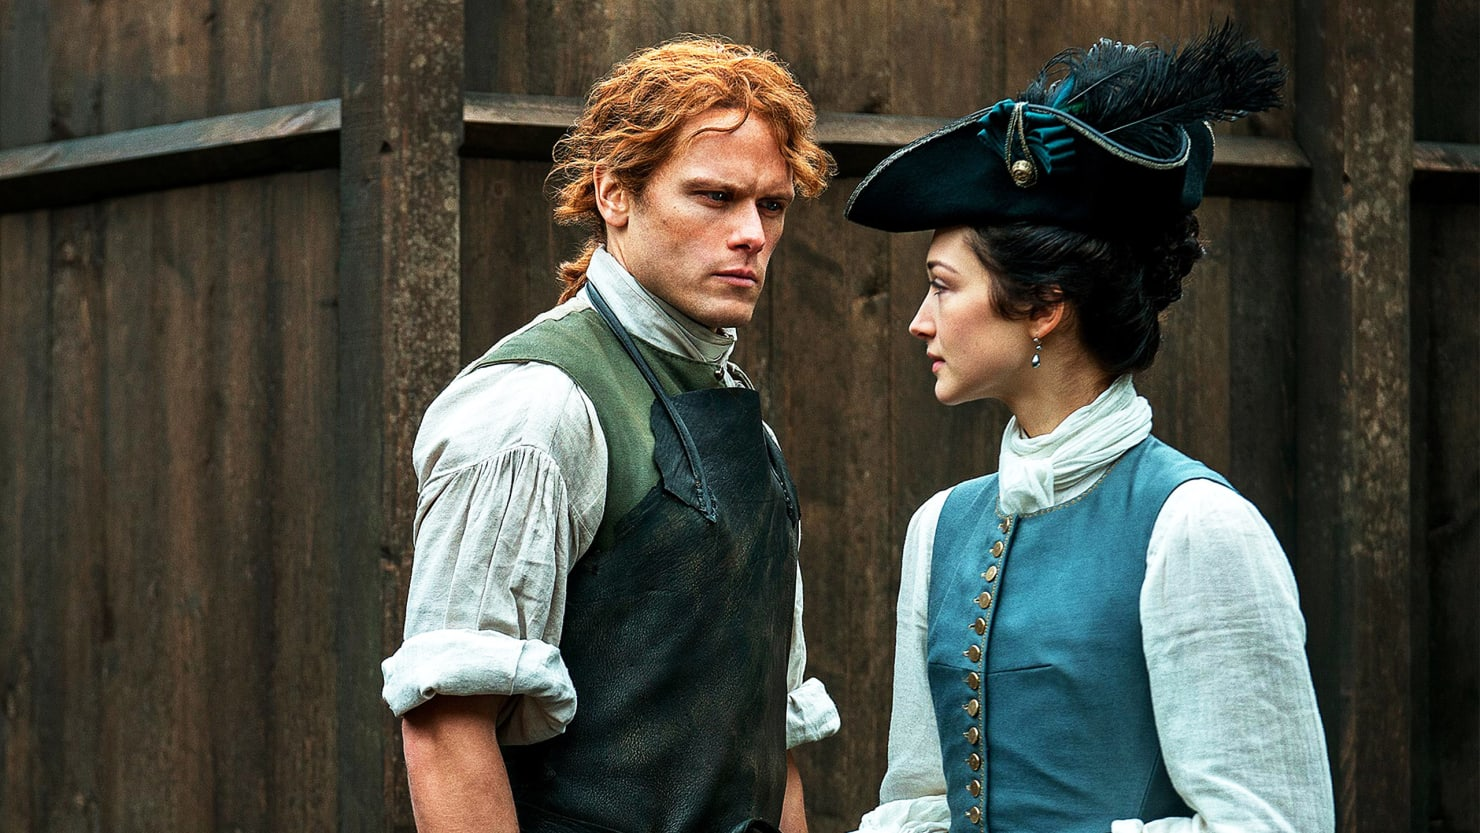 House Tv Series Outlander Gets Right What Game Of Thrones Got Wrong